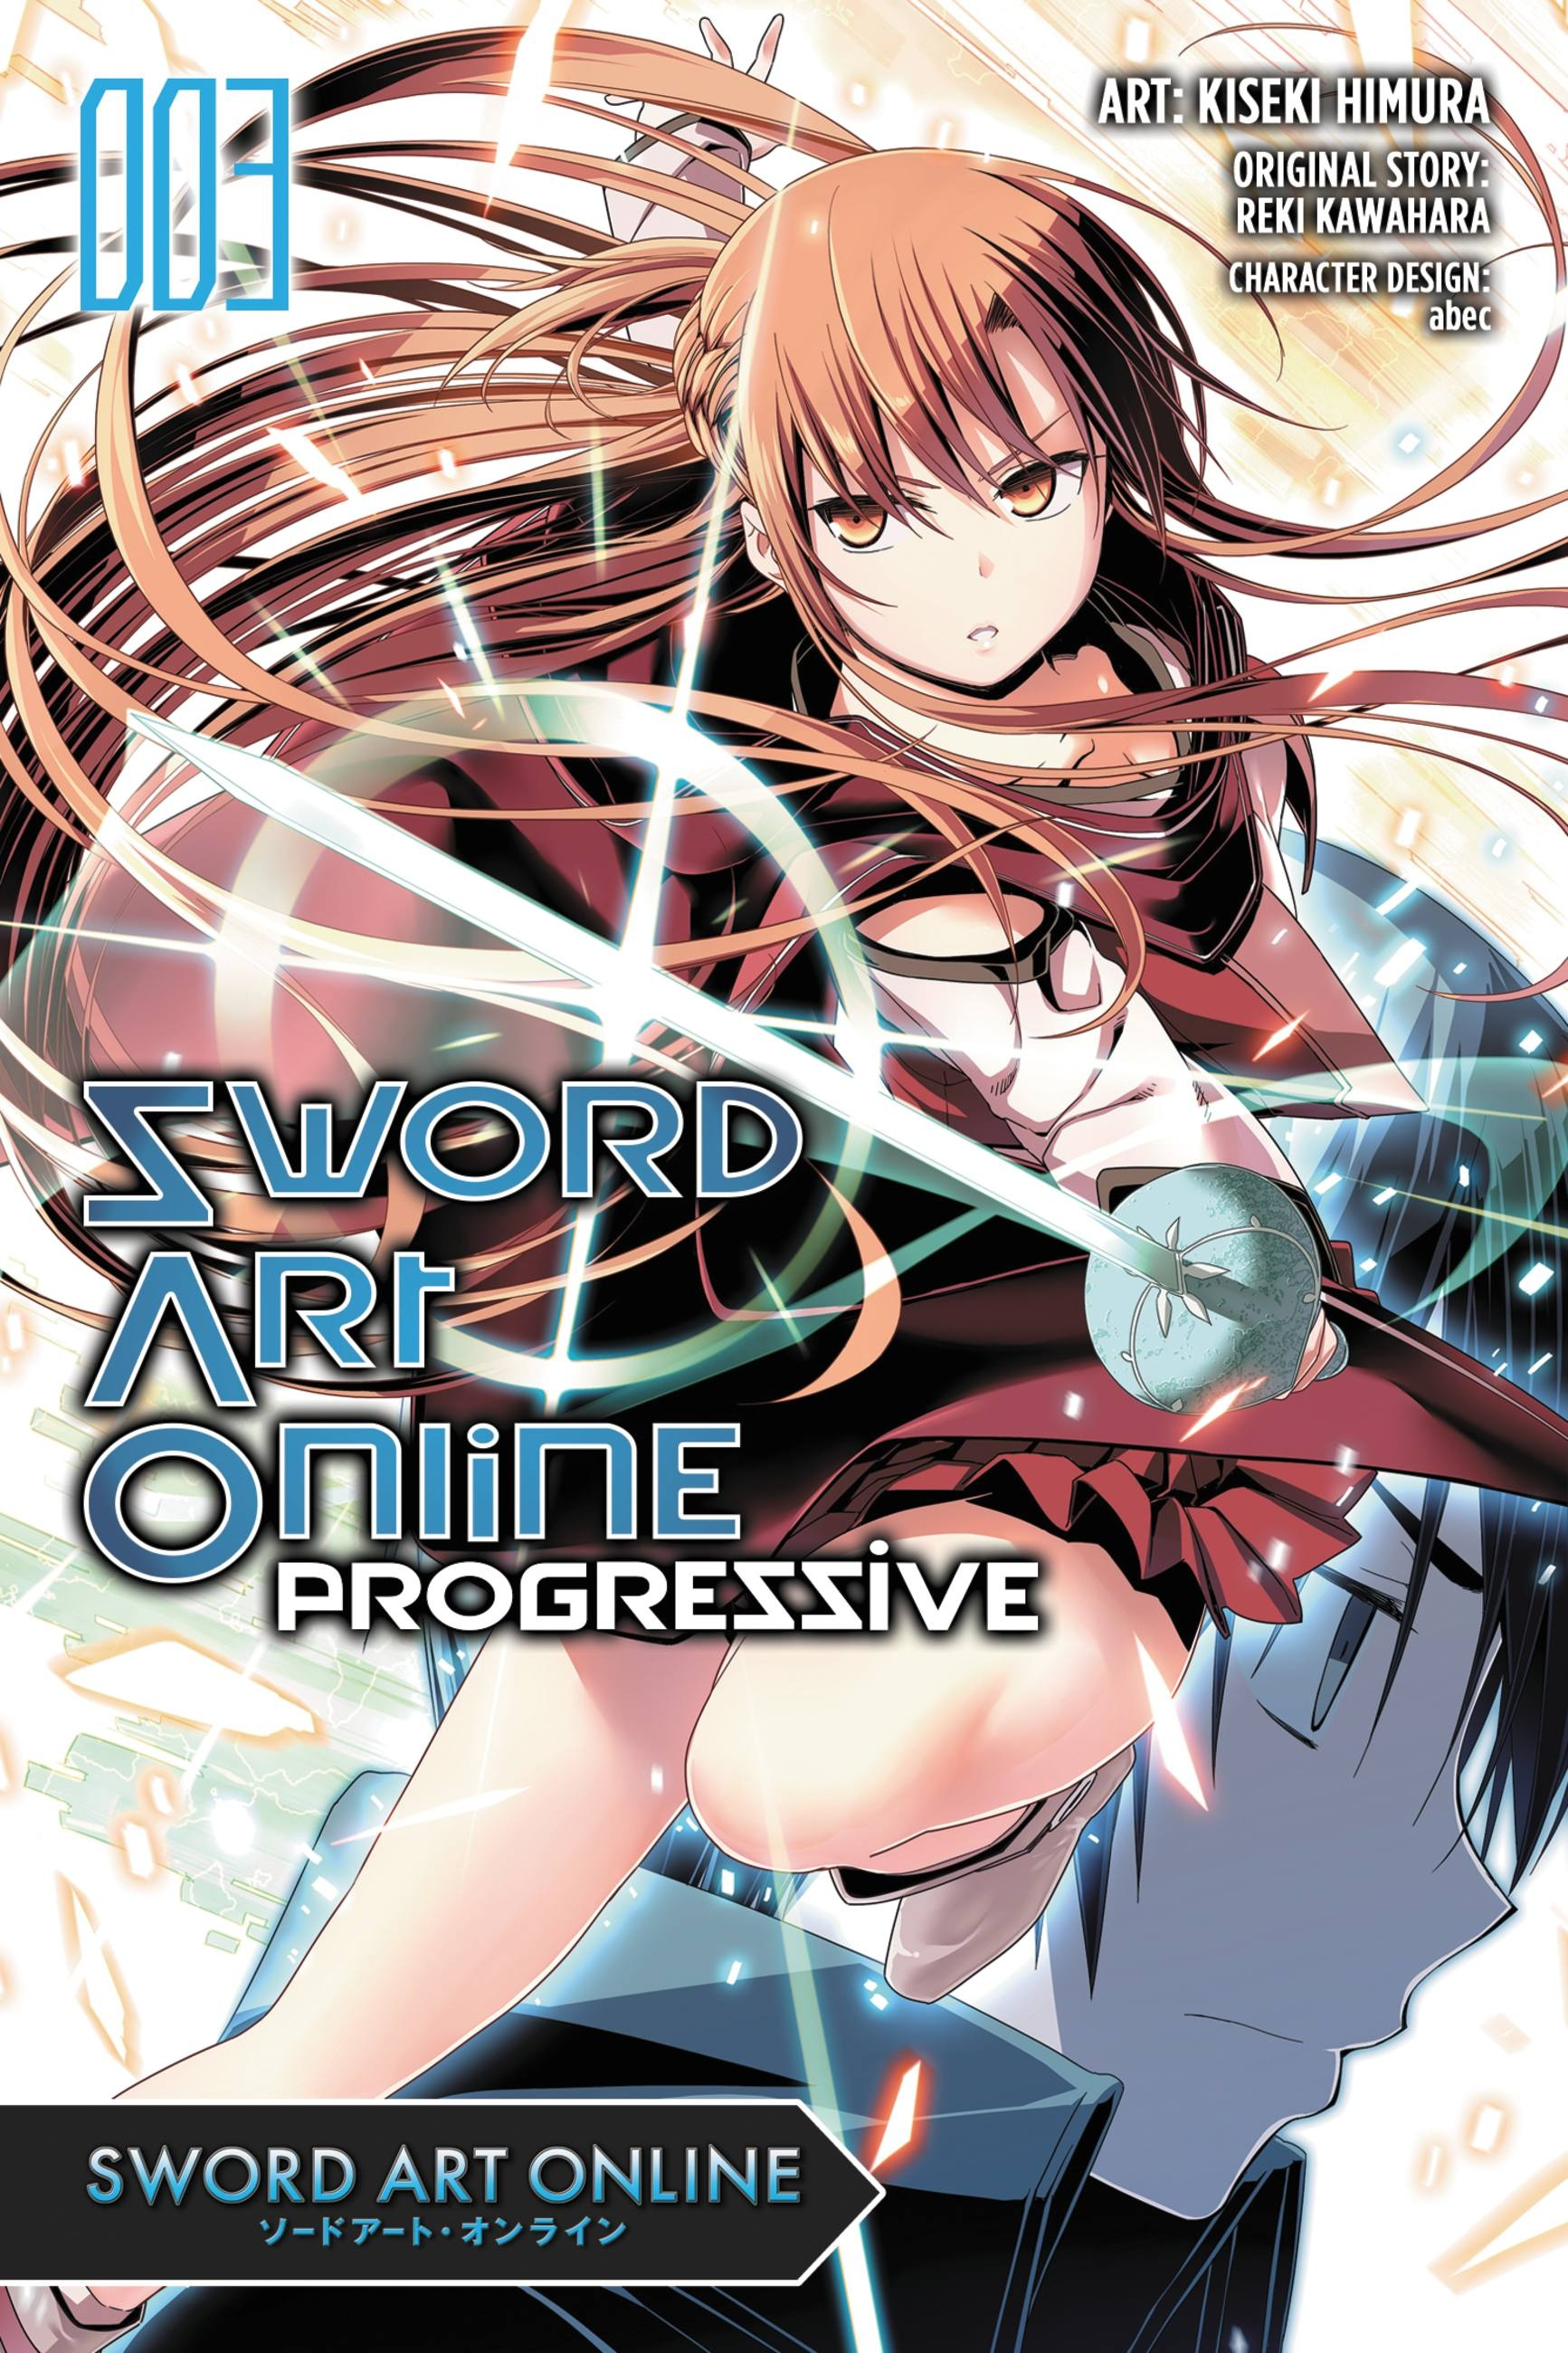 sword art online raw manga